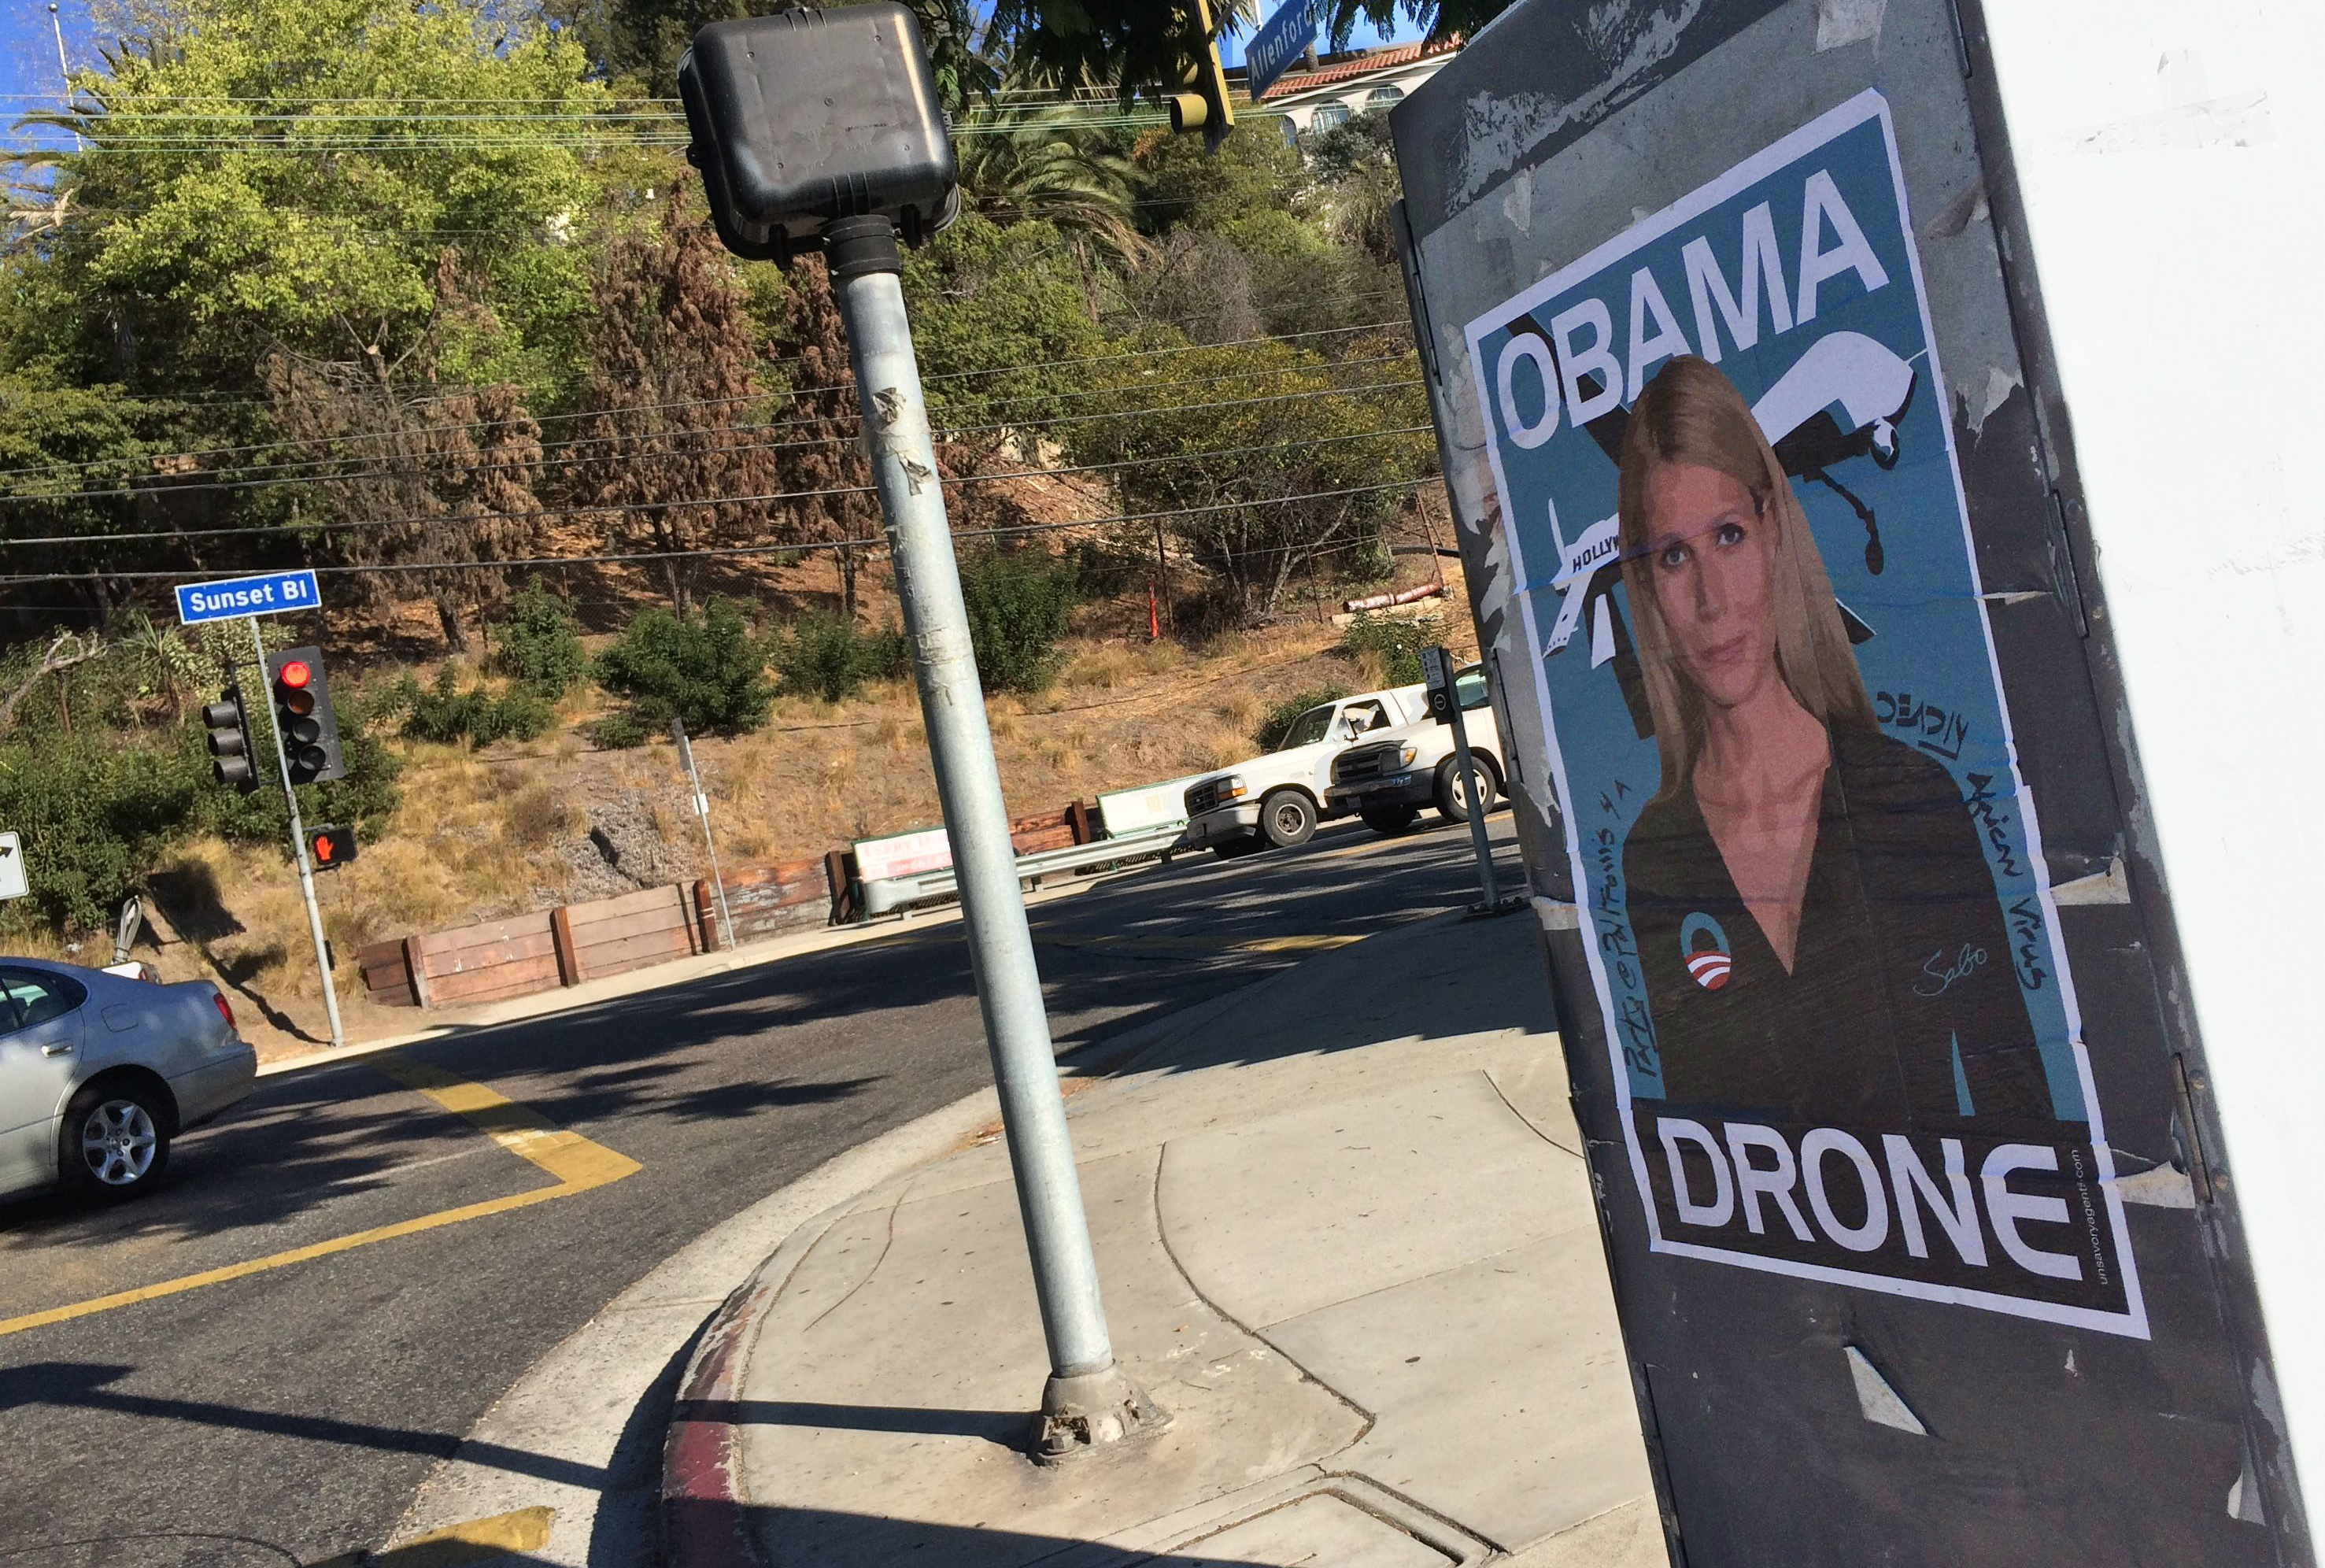 Gwyneth Paltrow Obama Drone posters poster Sabo President Obama DNC fundraiser L.A. Los Angeles Brentwood neighborhood neighbor neighbors hang hanging hung signs plaster plastering plastered traffic signal box boxes lamp posts bus benches anonymous conservative street artist provocative controversial subversive Unsavory Agents UnsavoryAgents outside political Democrats Democrat drones Predator plane planes flying background actor actress home house host hosting gala sunset 02